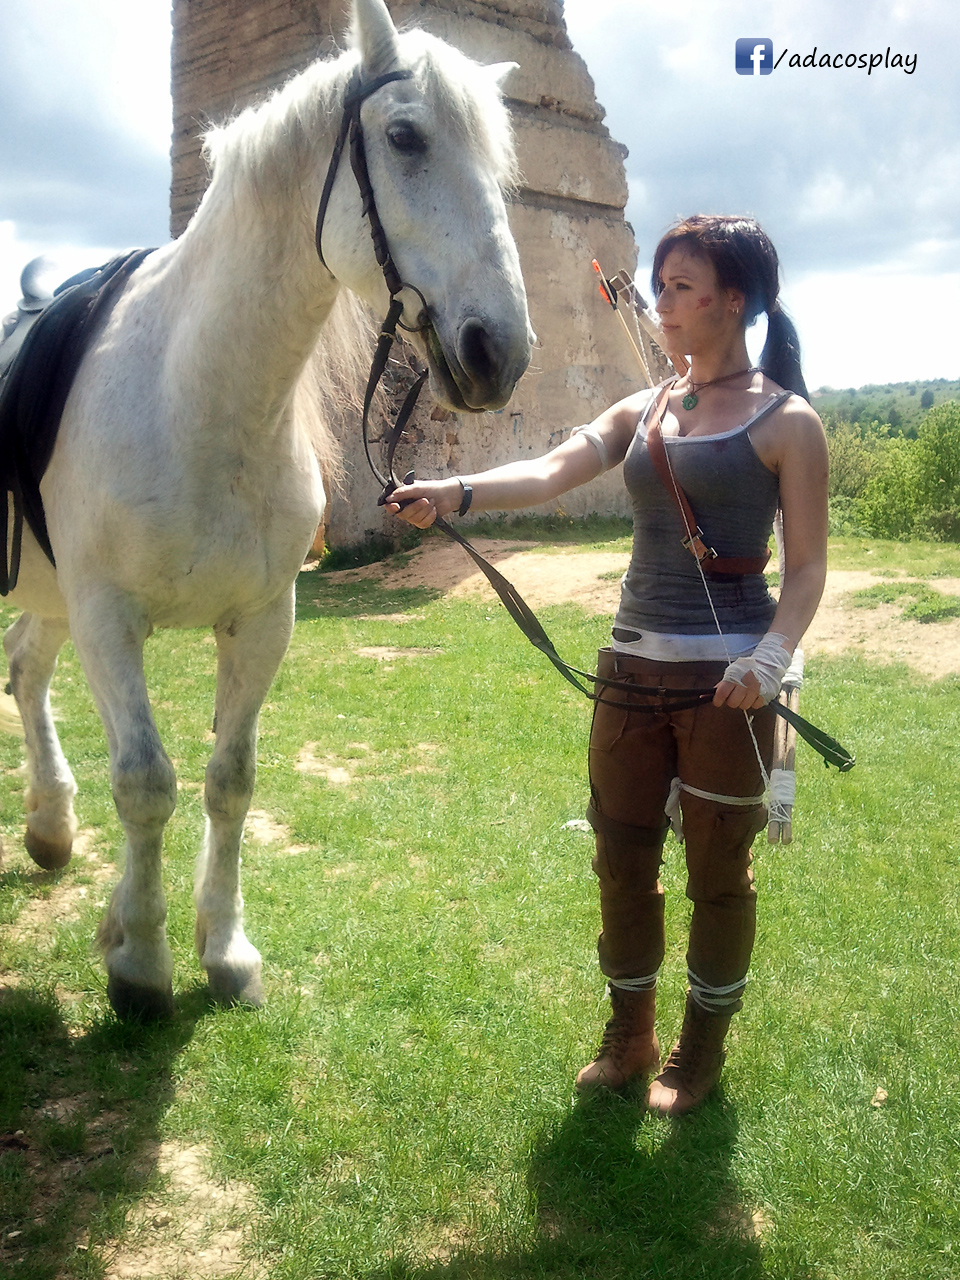 Lara croft with a horse